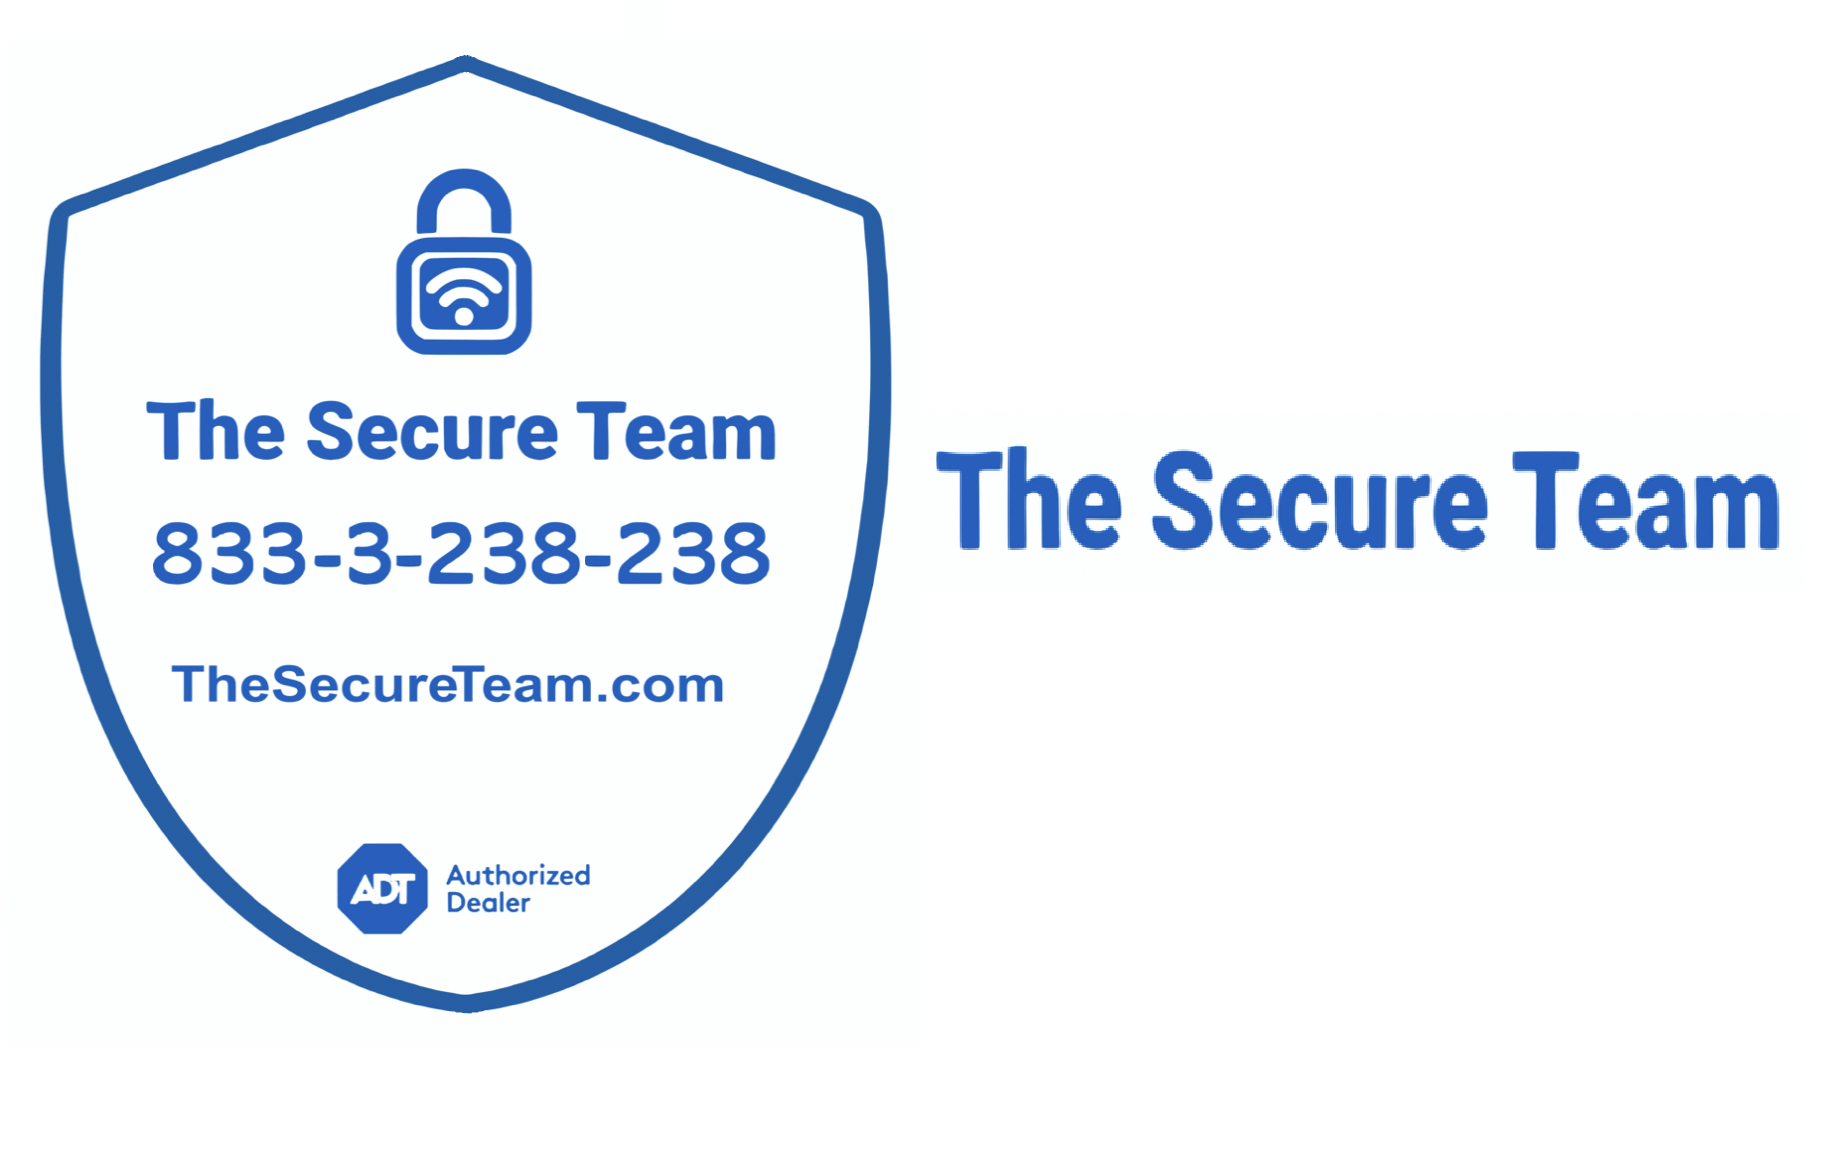 The Secure Team logo